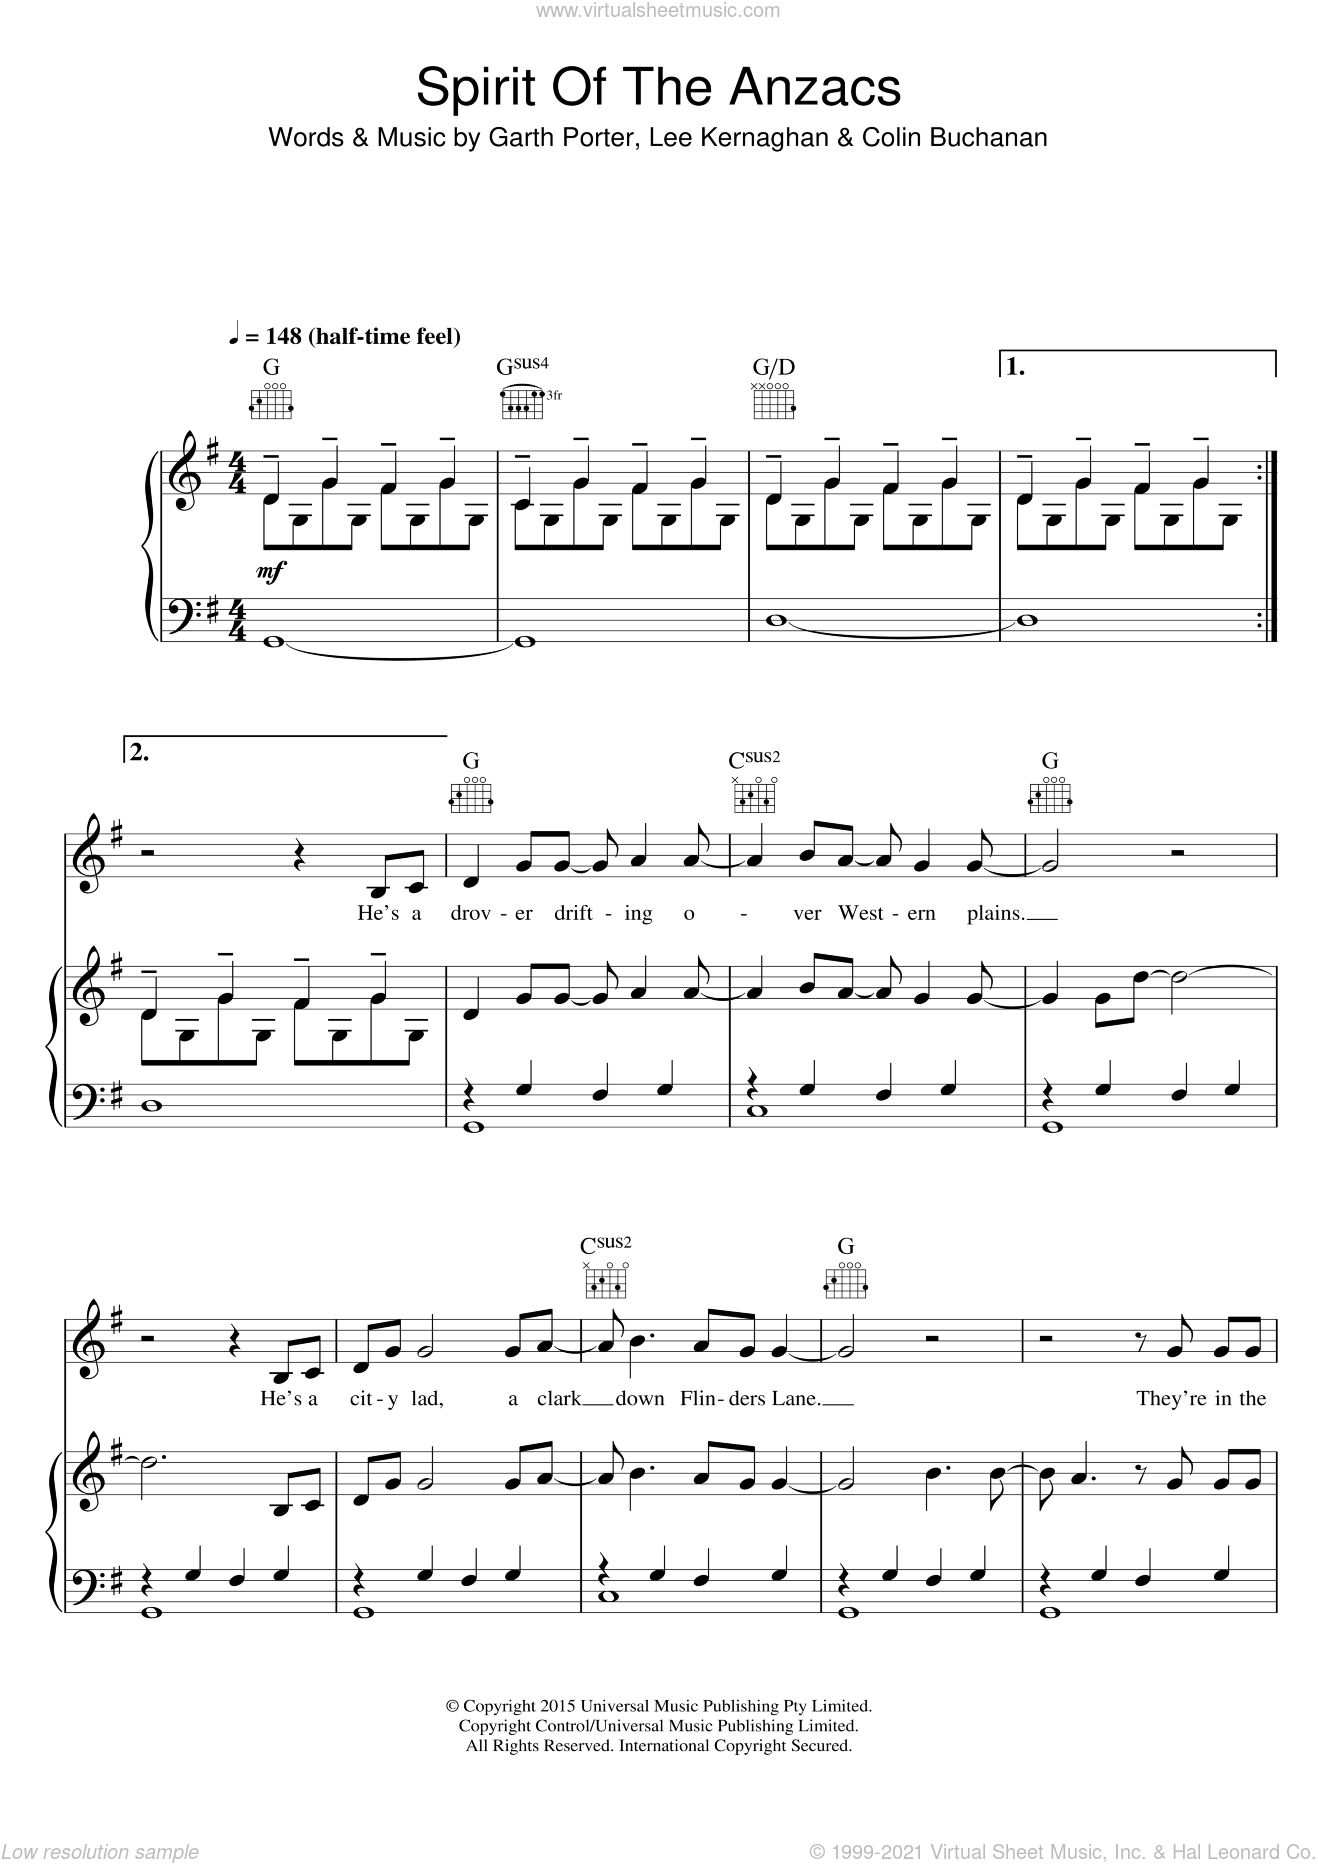 Spirit Of The Anzacs sheet music for voice, piano or guitar by Lee Kernaghan, Colin Buchanan and Garth Porter, intermediate skill level